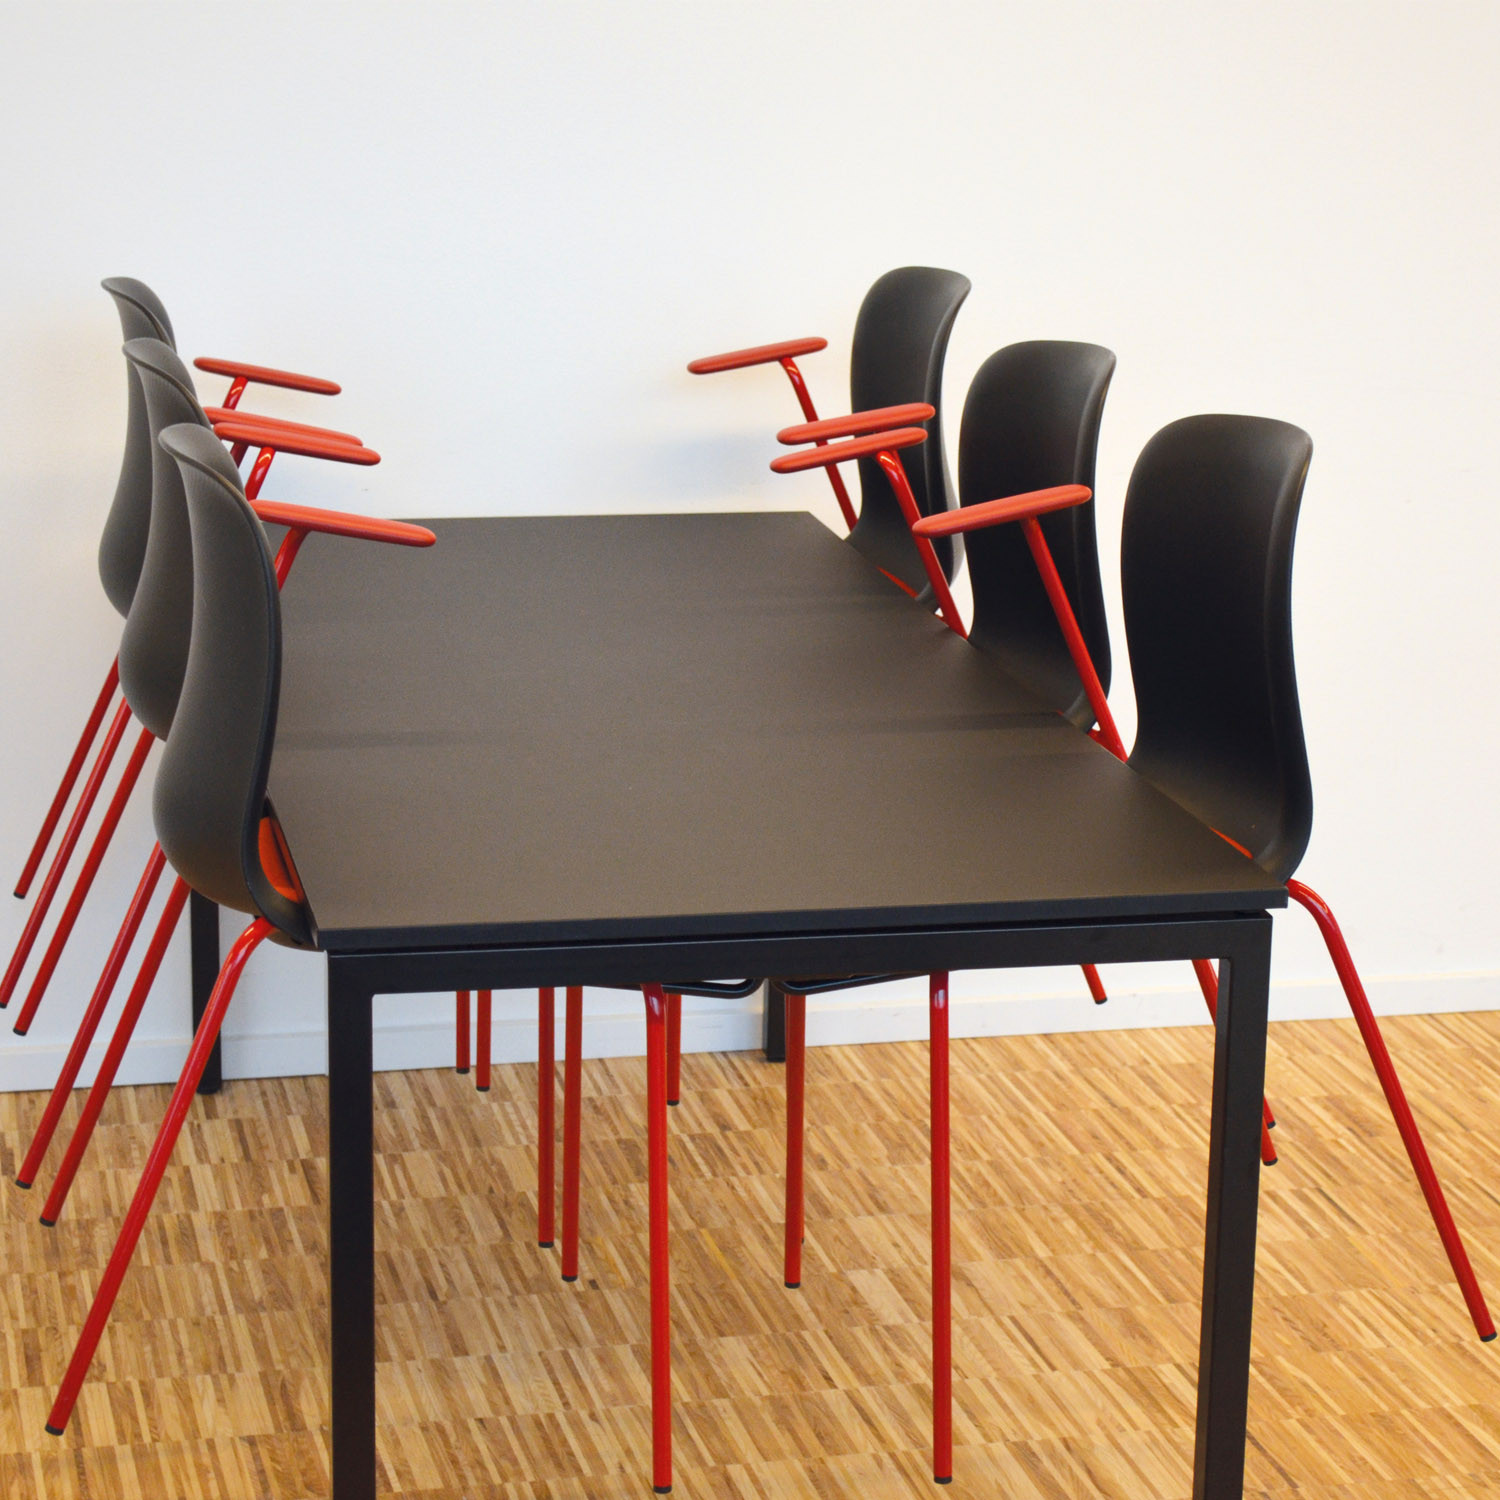 Usu Folding Tables with Chair Hanger System